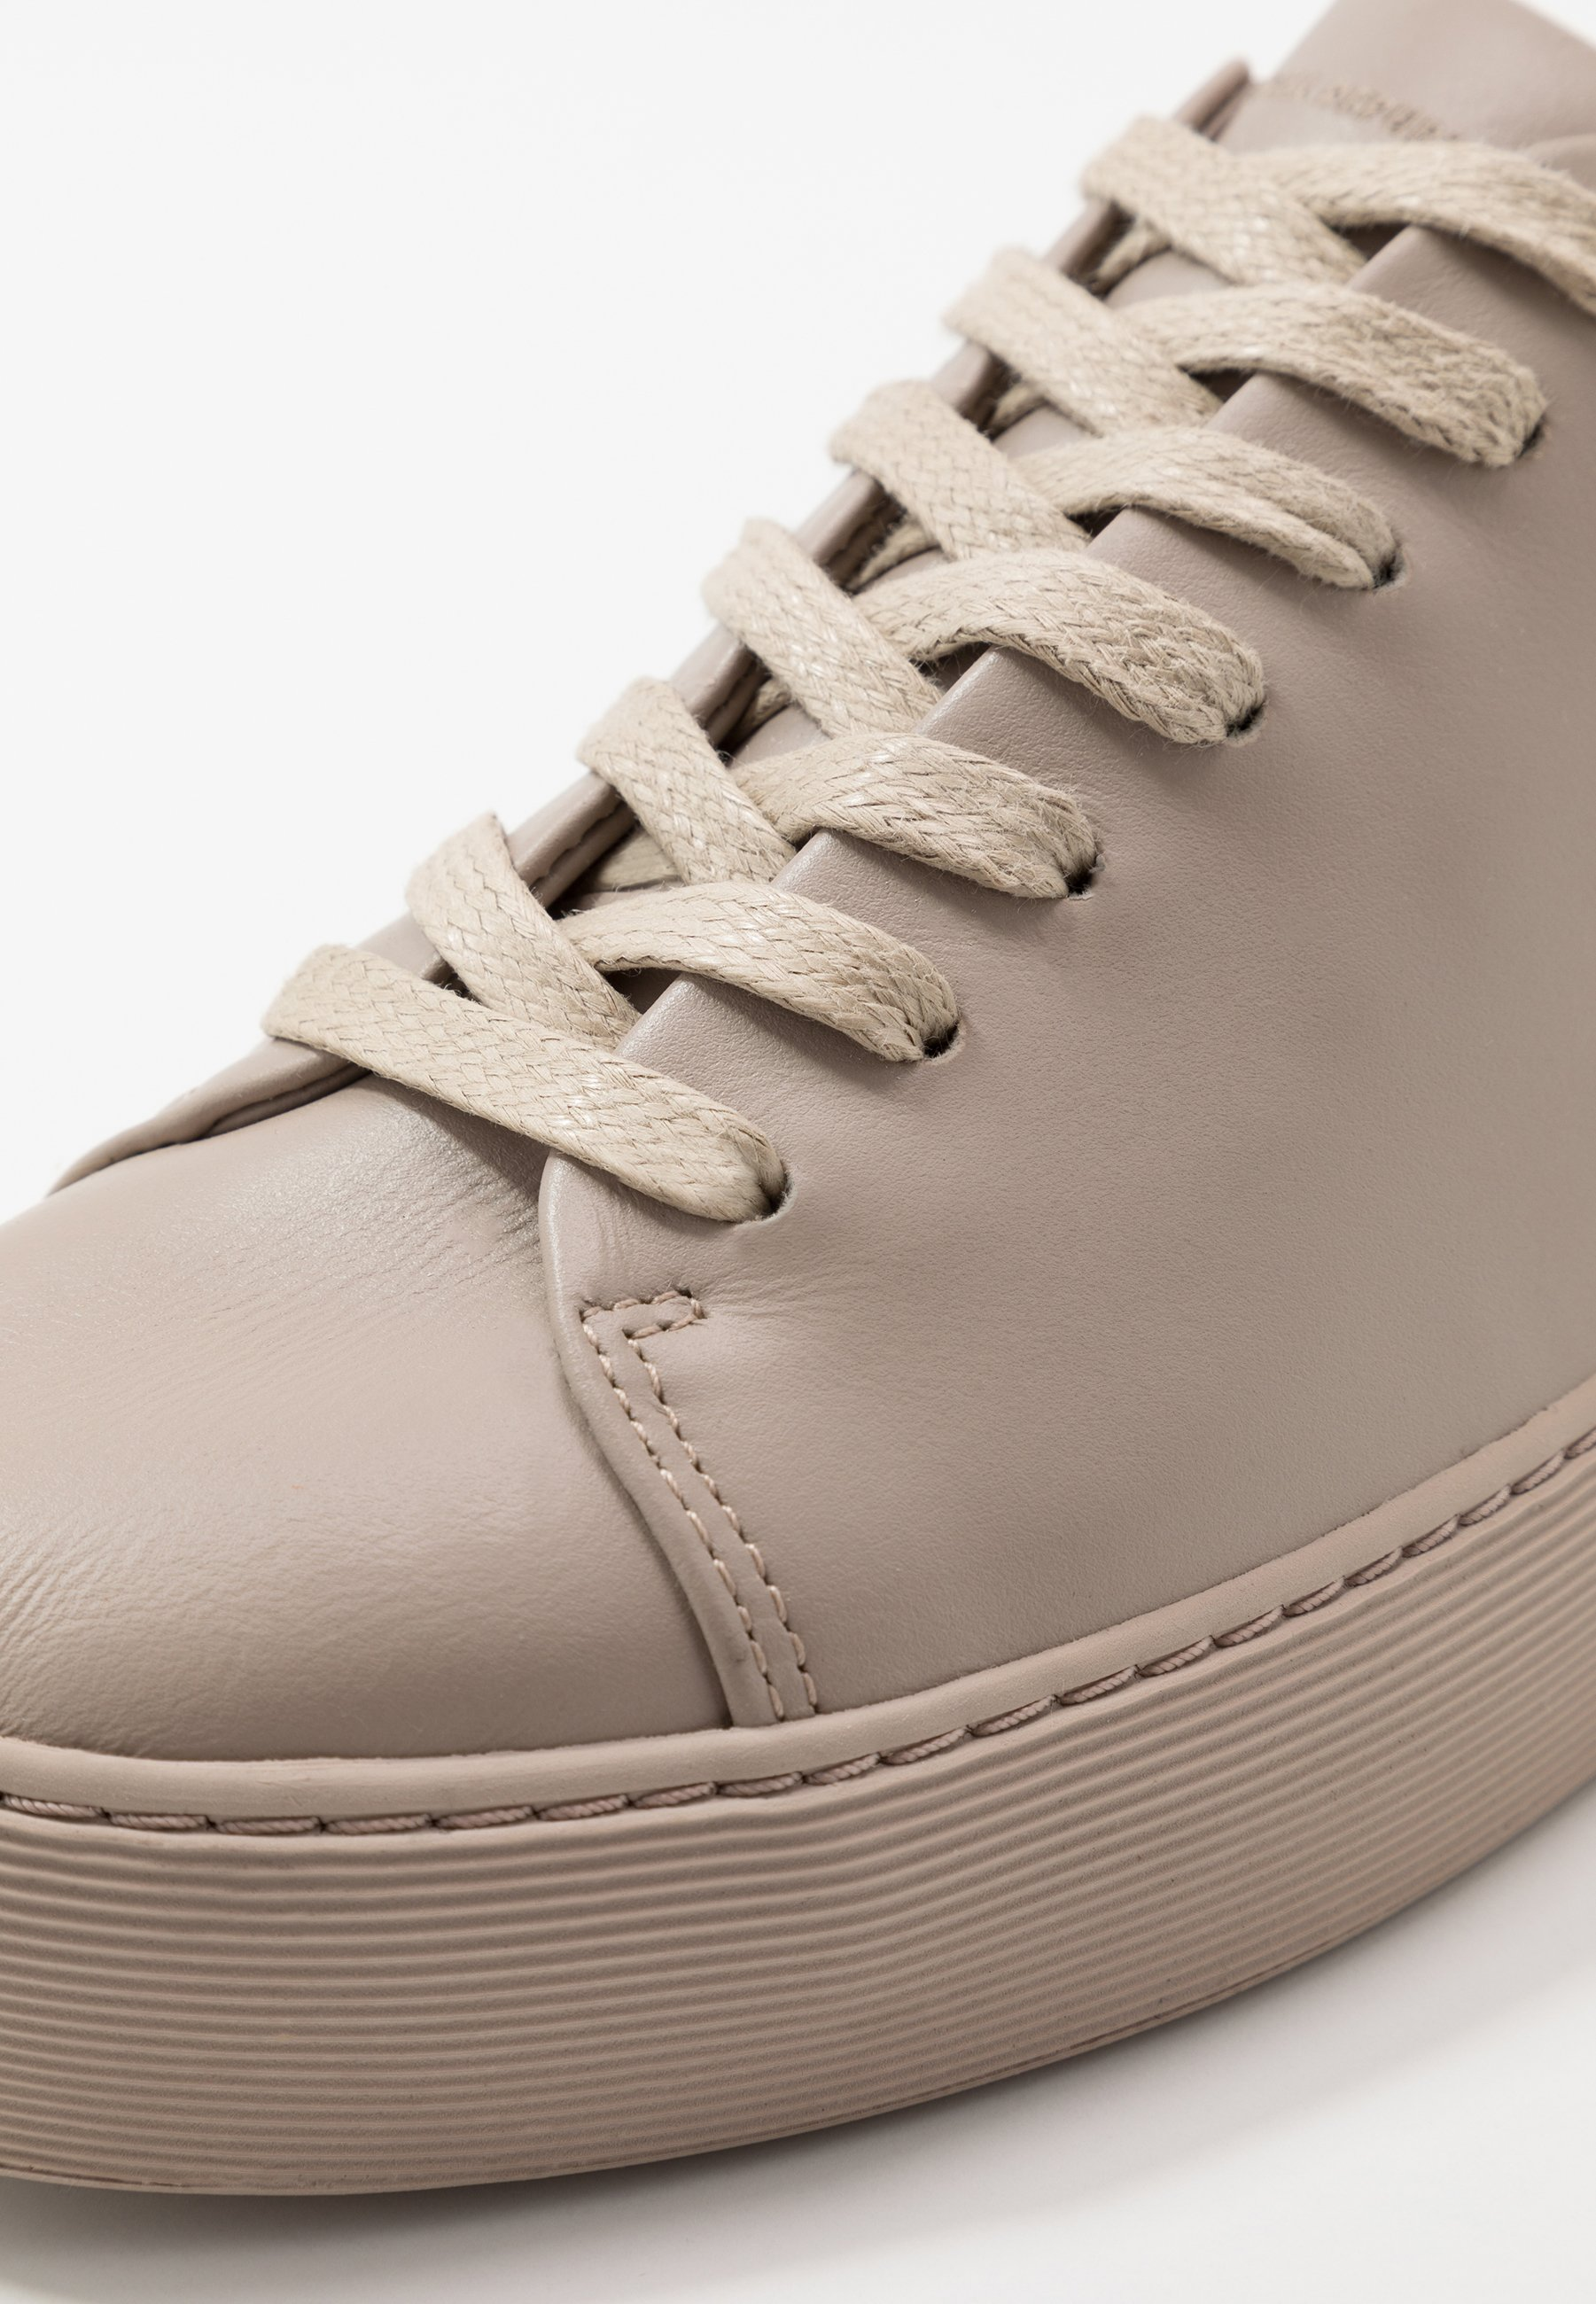 Royal RepubliQ DORIC BOUND DERBY SHOE Sneaker low clay/nude